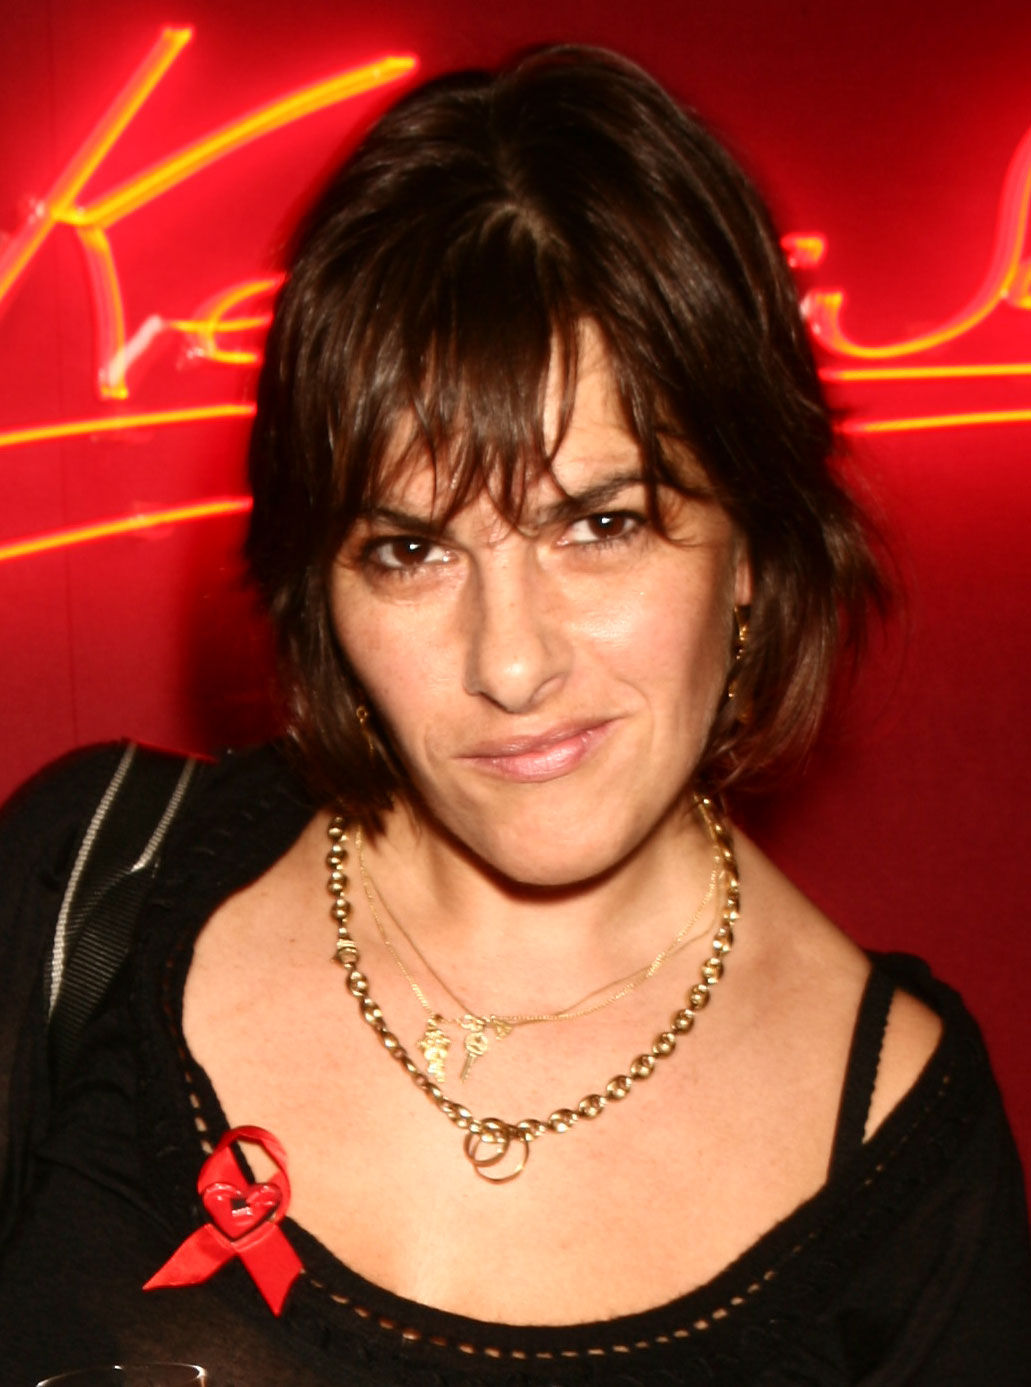 Photo of Tracey Emin: English artist, one of the group known as Britartists or Young British Artists